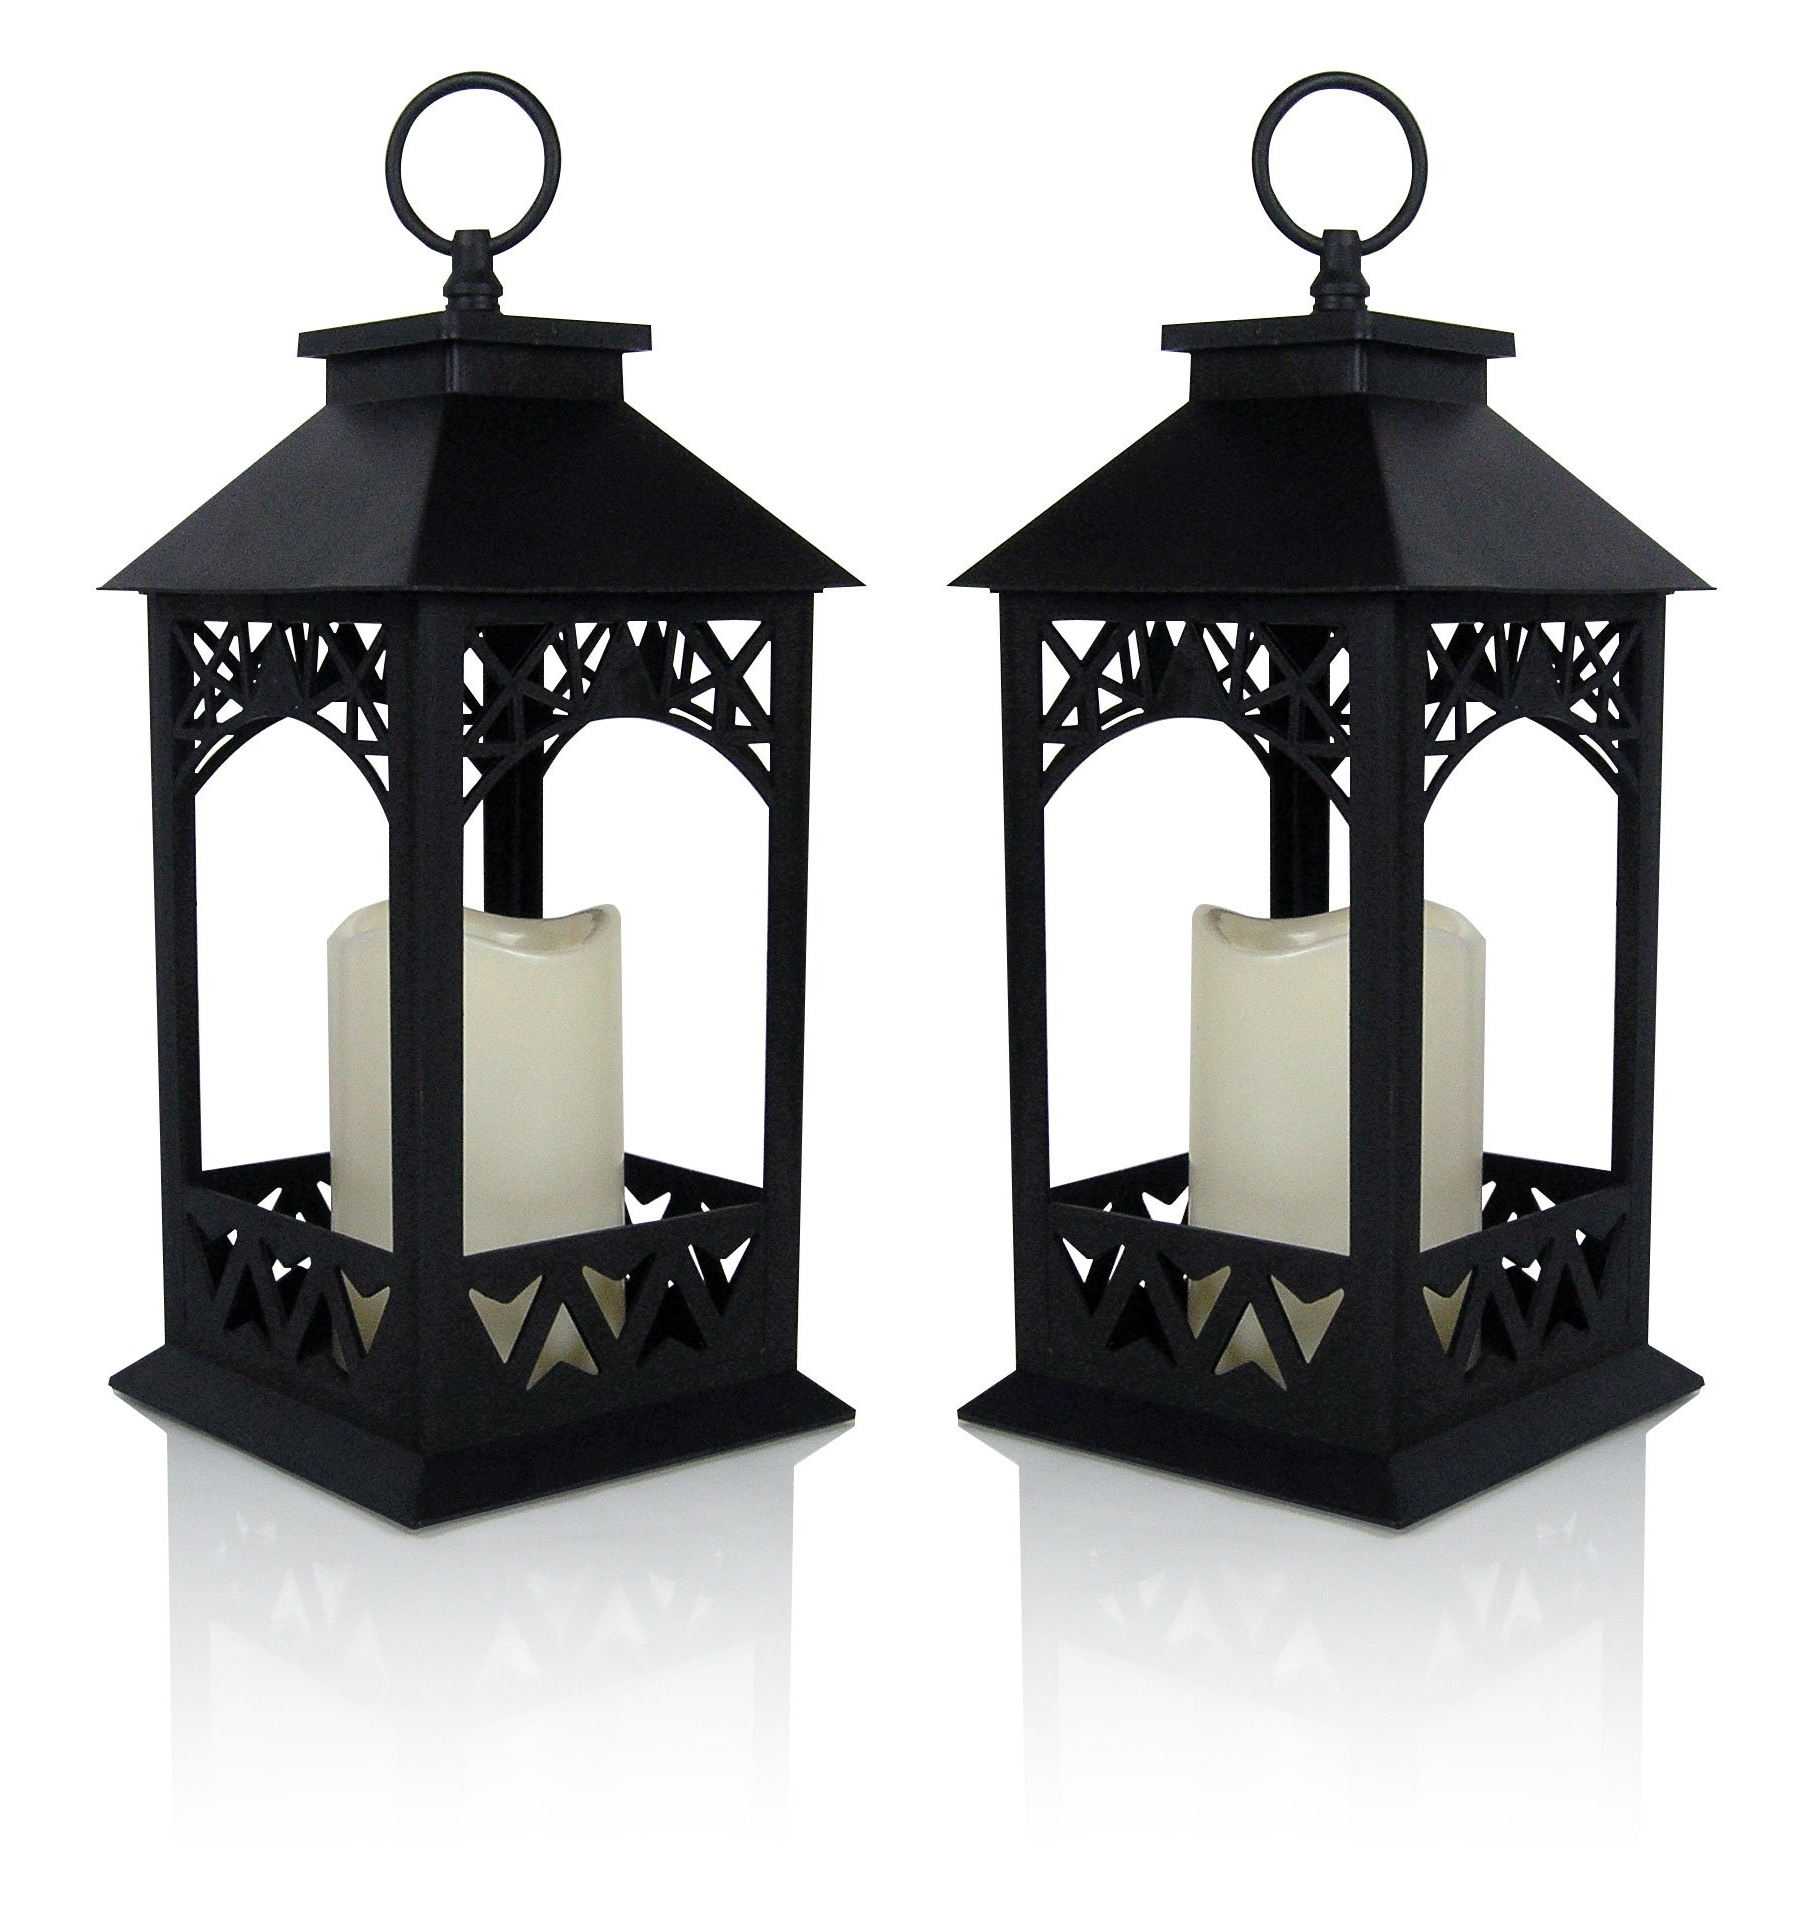 Best And Newest Cheap Outdoor Lanterns Within Cheap Outdoor Lanterns Candle, Find Outdoor Lanterns Candle Deals On (View 3 of 20)